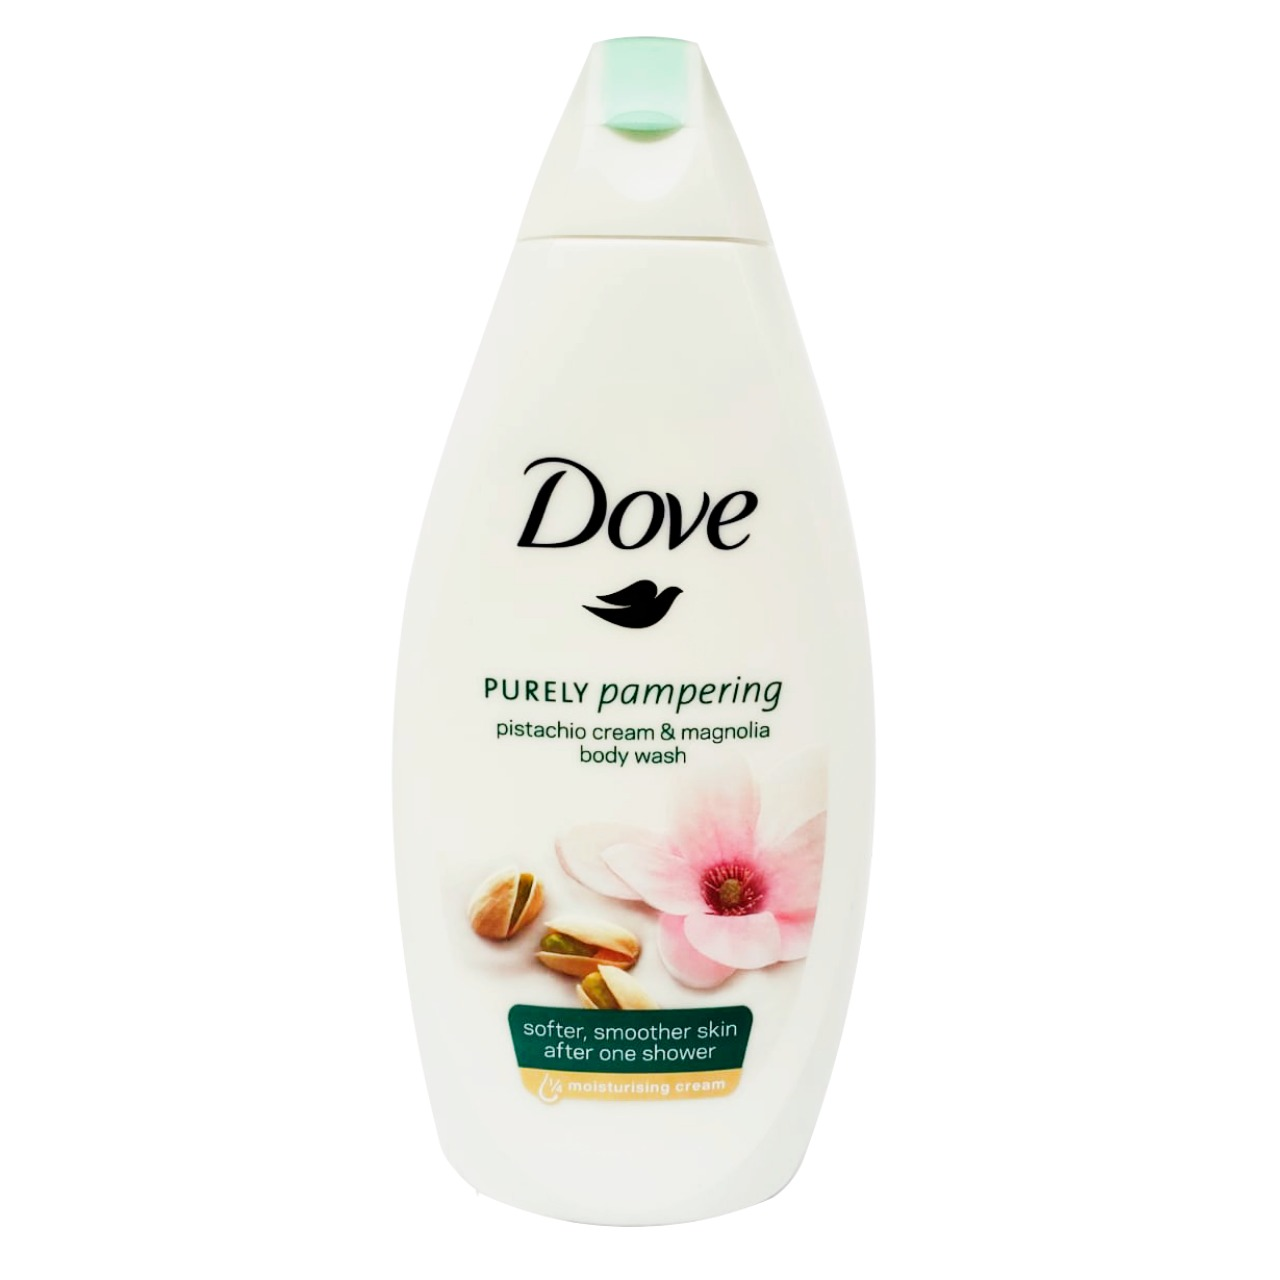 Dove Purely Pampering With Pistachio Cream Magnolia Body Wash 500ml Bestdeal Shop Com